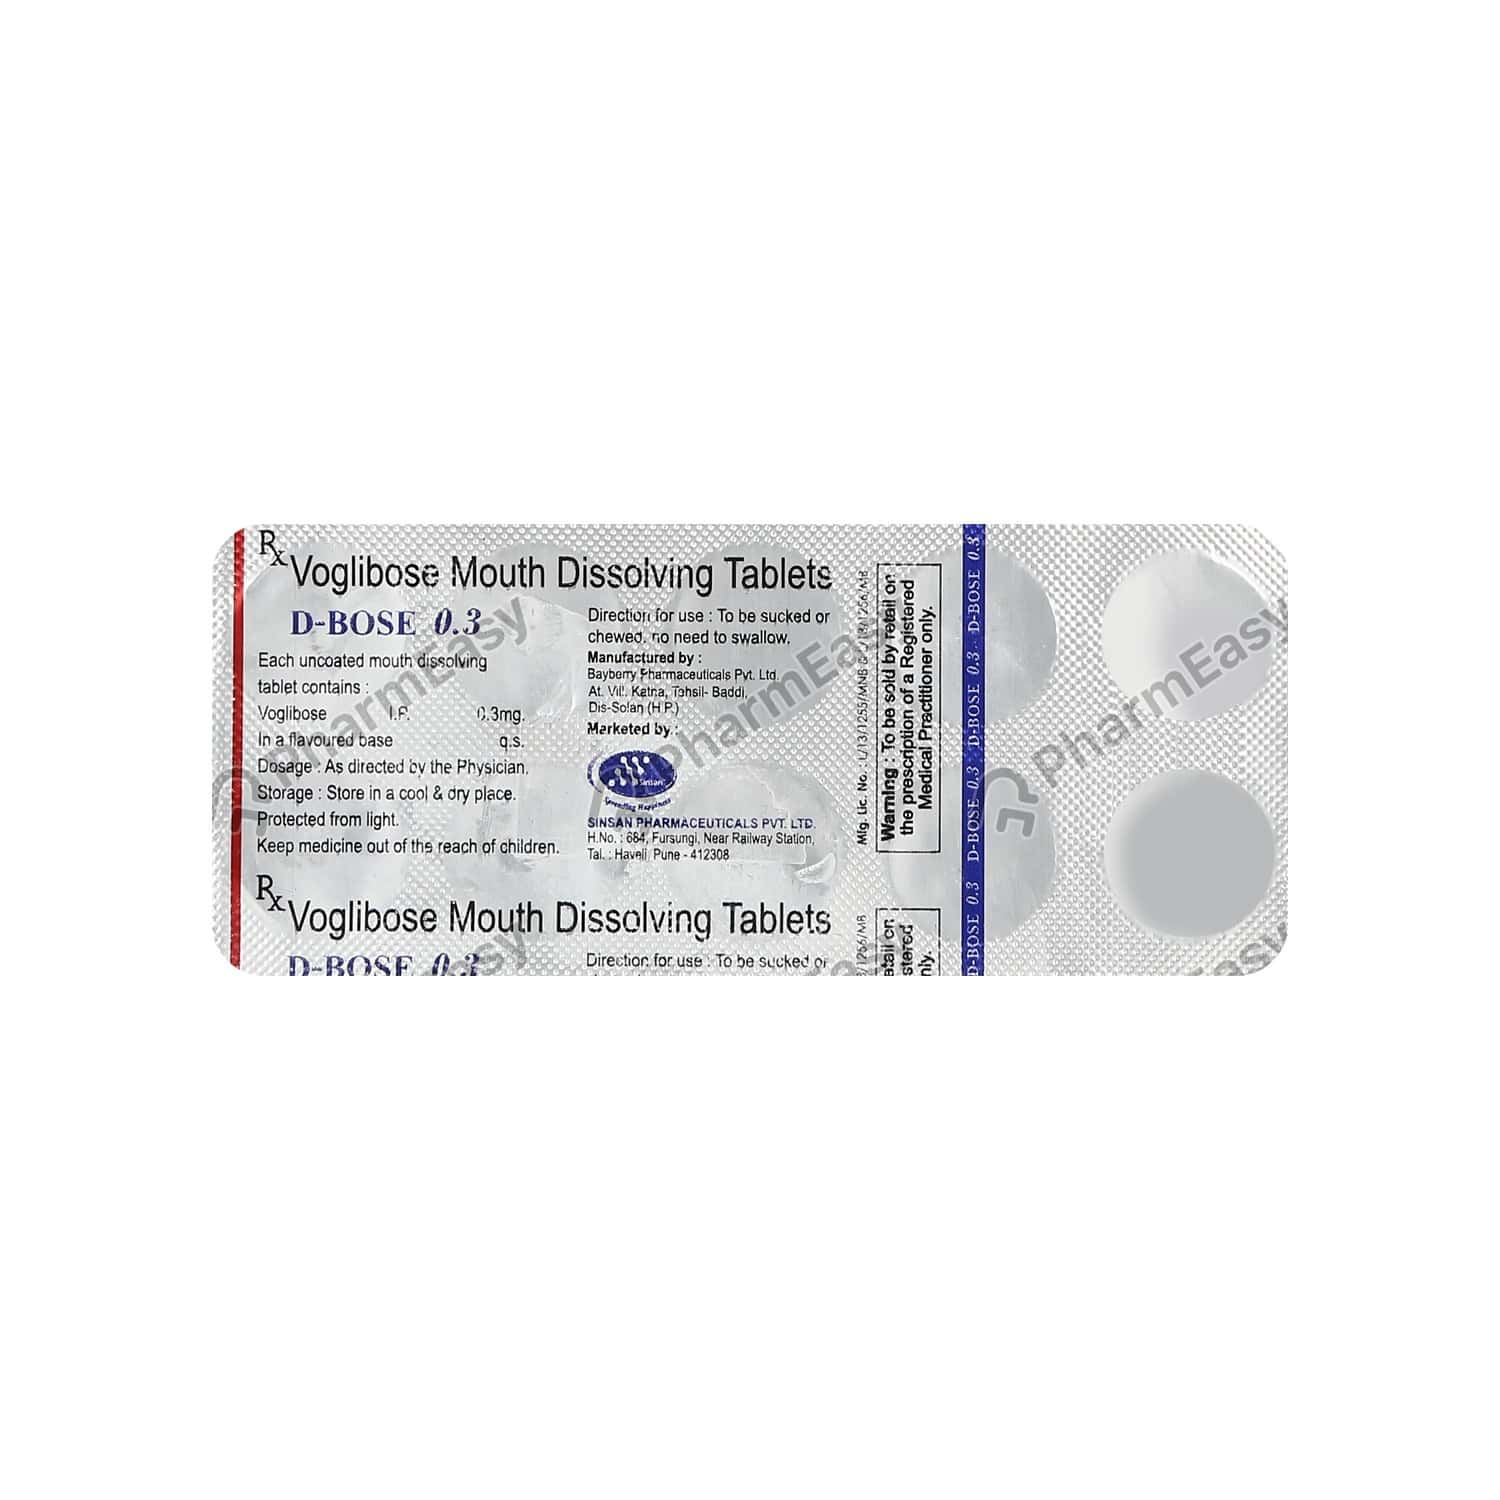 D Bose 0.3mg Strip Of 10 Tablets